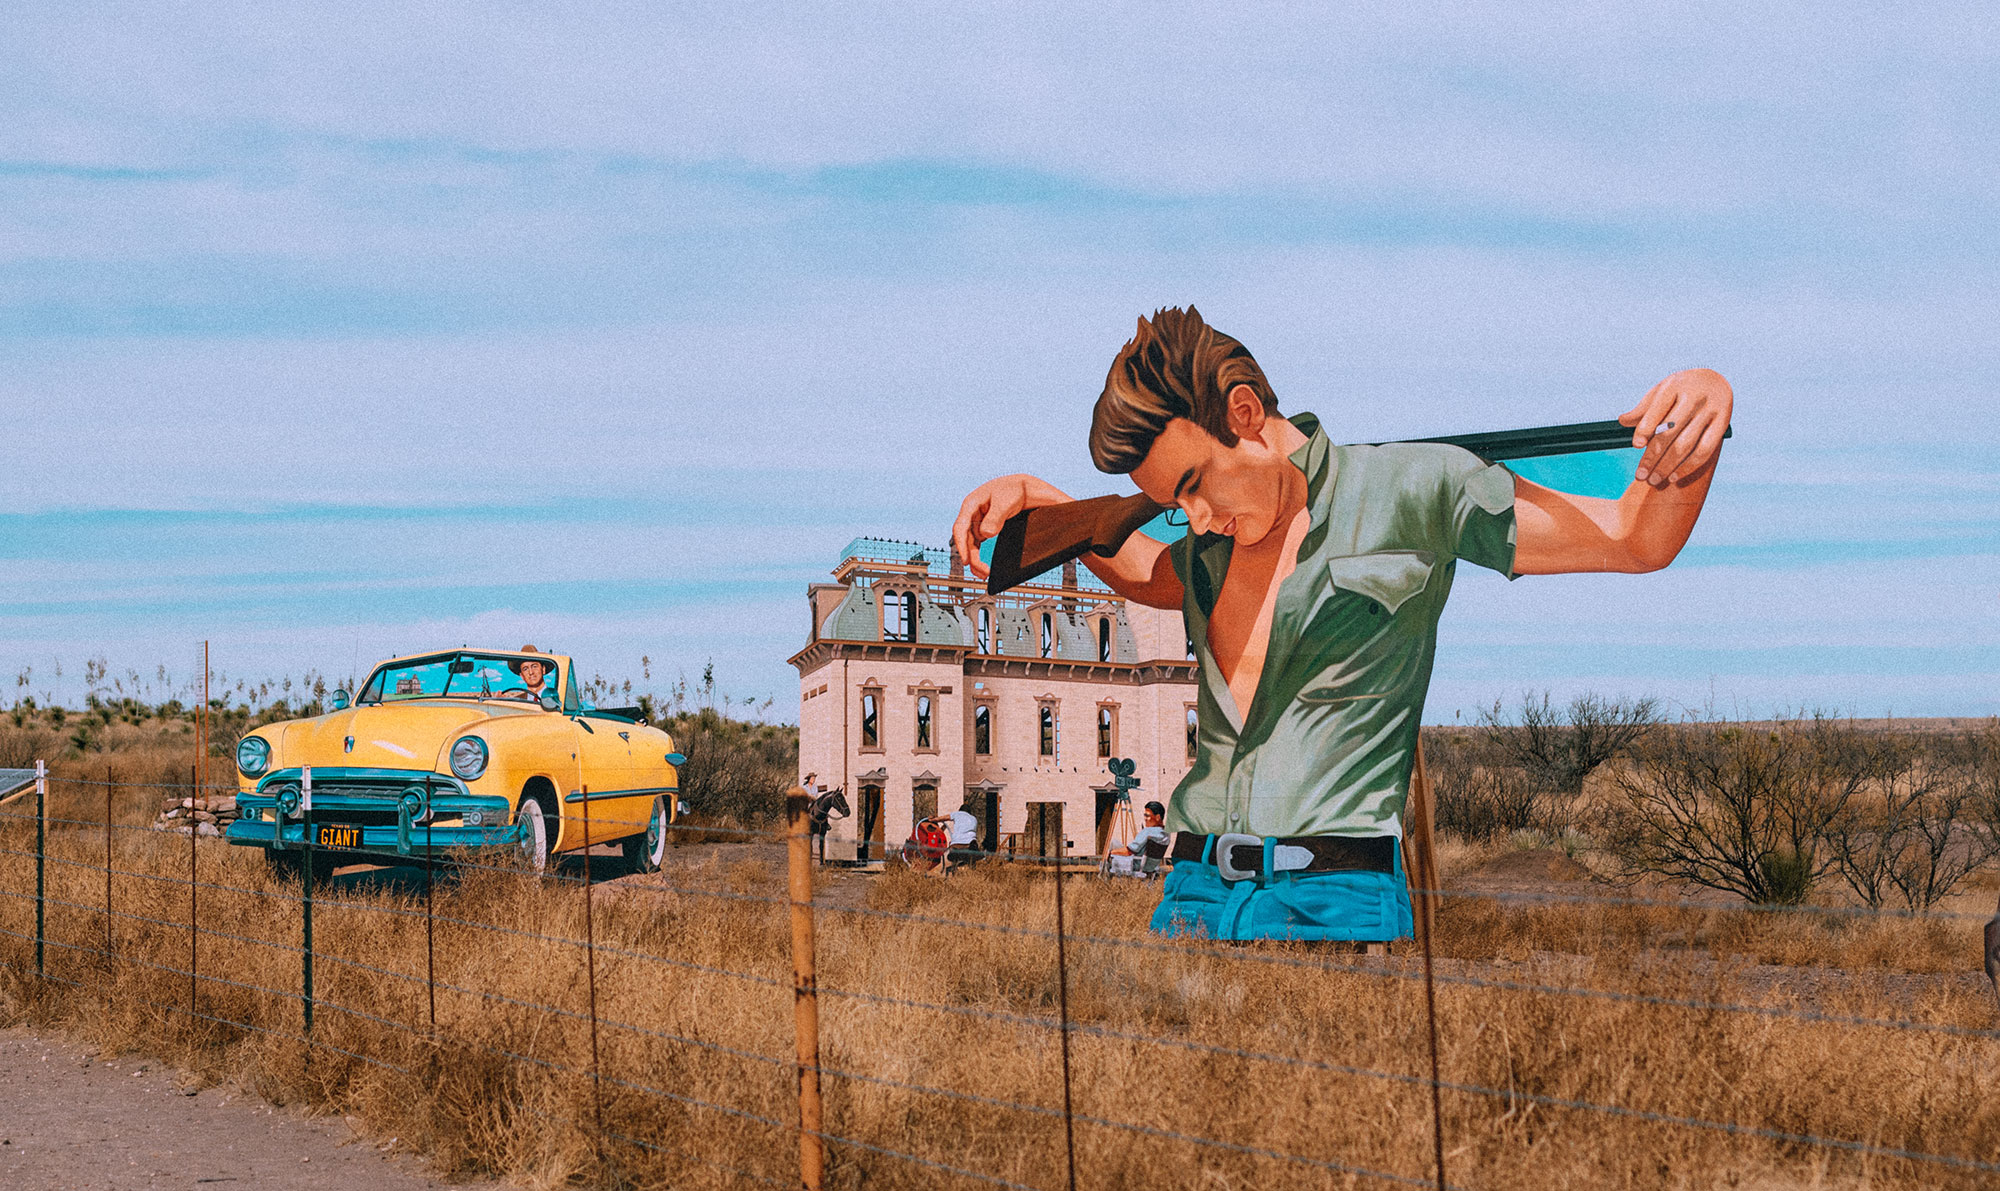 James Dean 'Giant' Mural Highway Art in Marfa, Texas / Travel, Lifestyle & Foodblog by Alice M. Huynh – Travel Texas